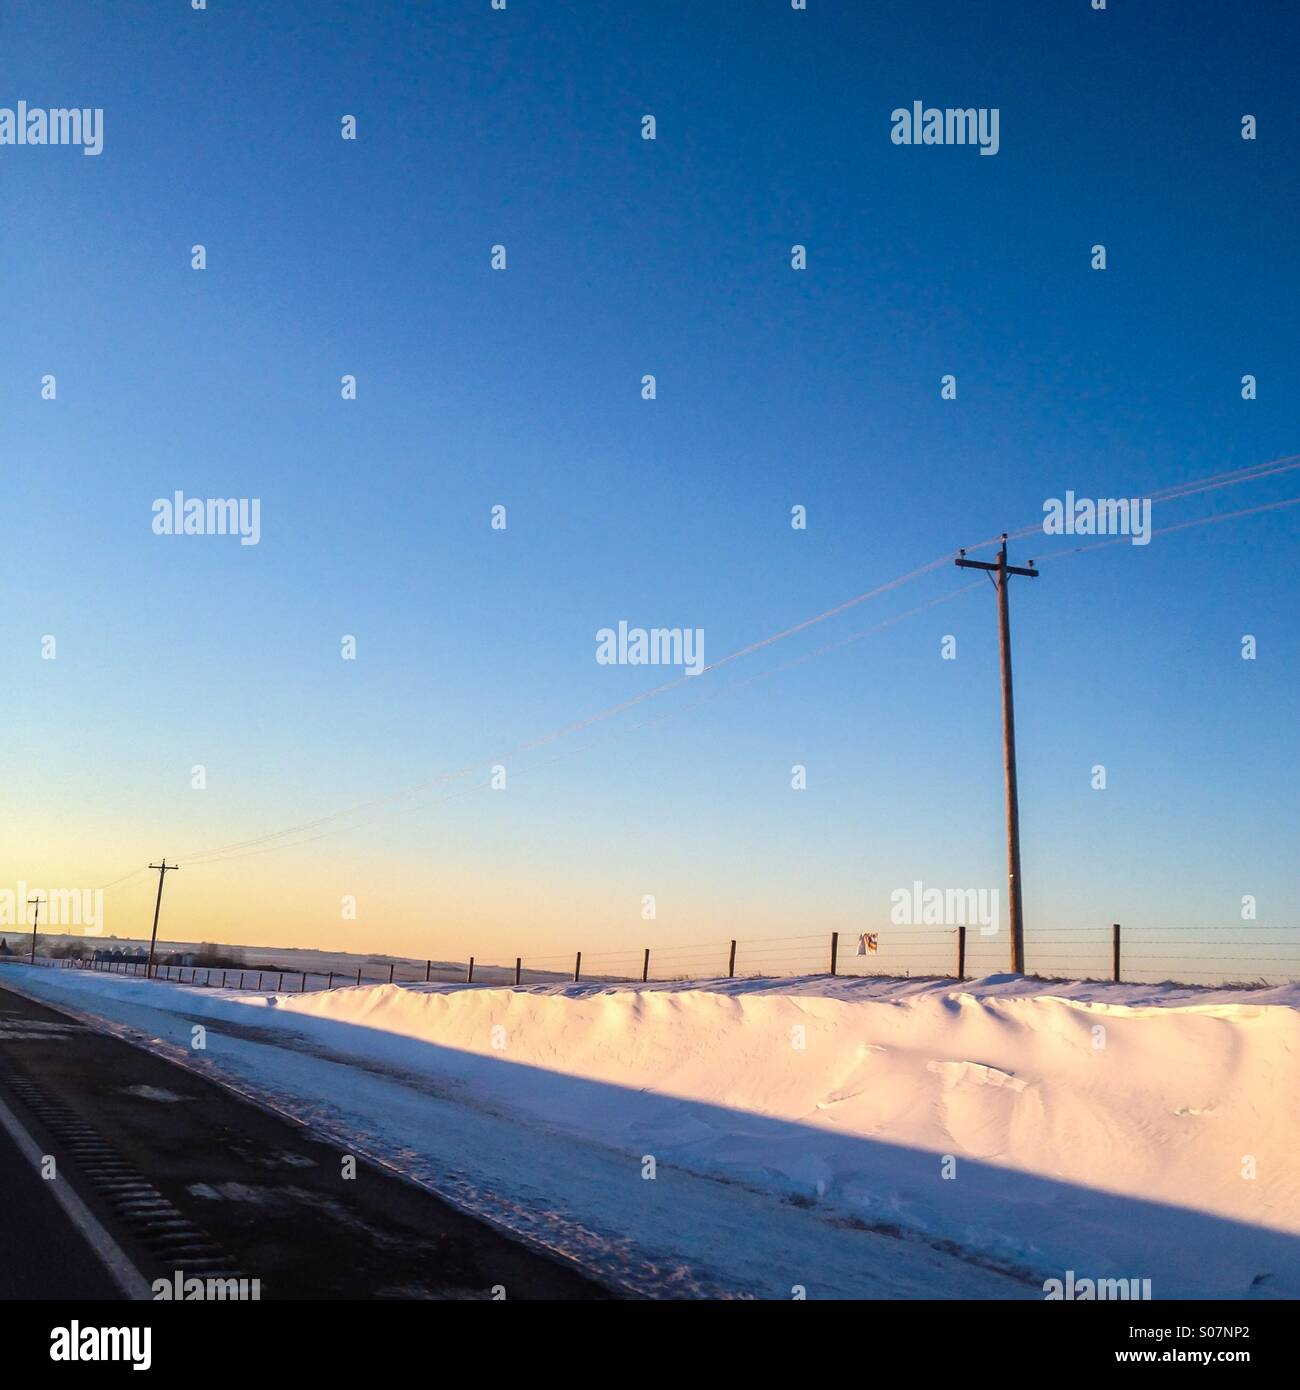 Snowdrifts lit up by the setting sun along the freeway in the prairies. - Stock Image